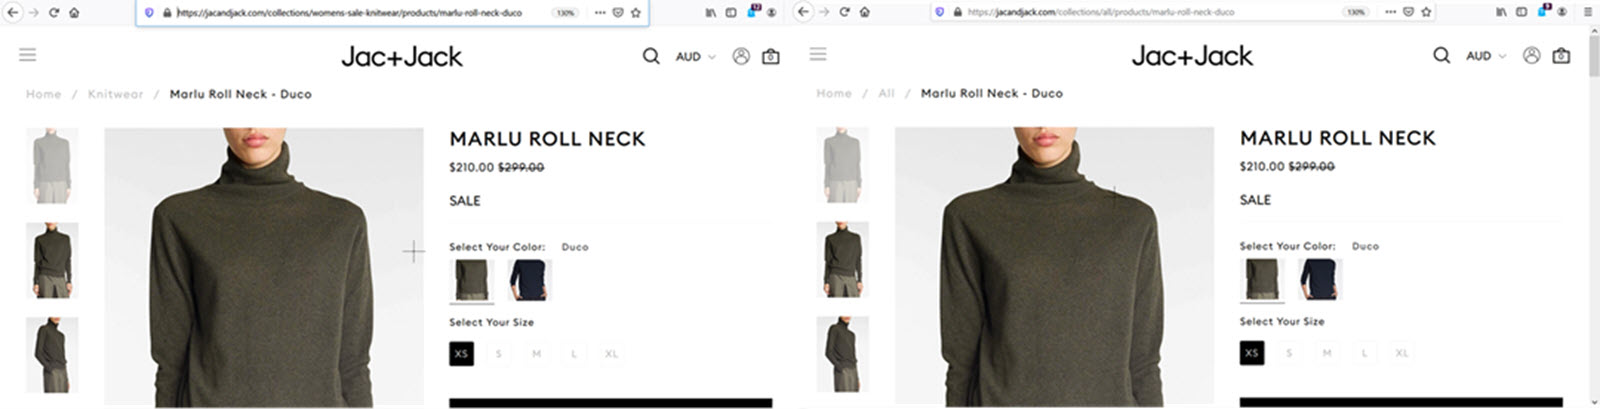 Shopify duplicate content issues example collections